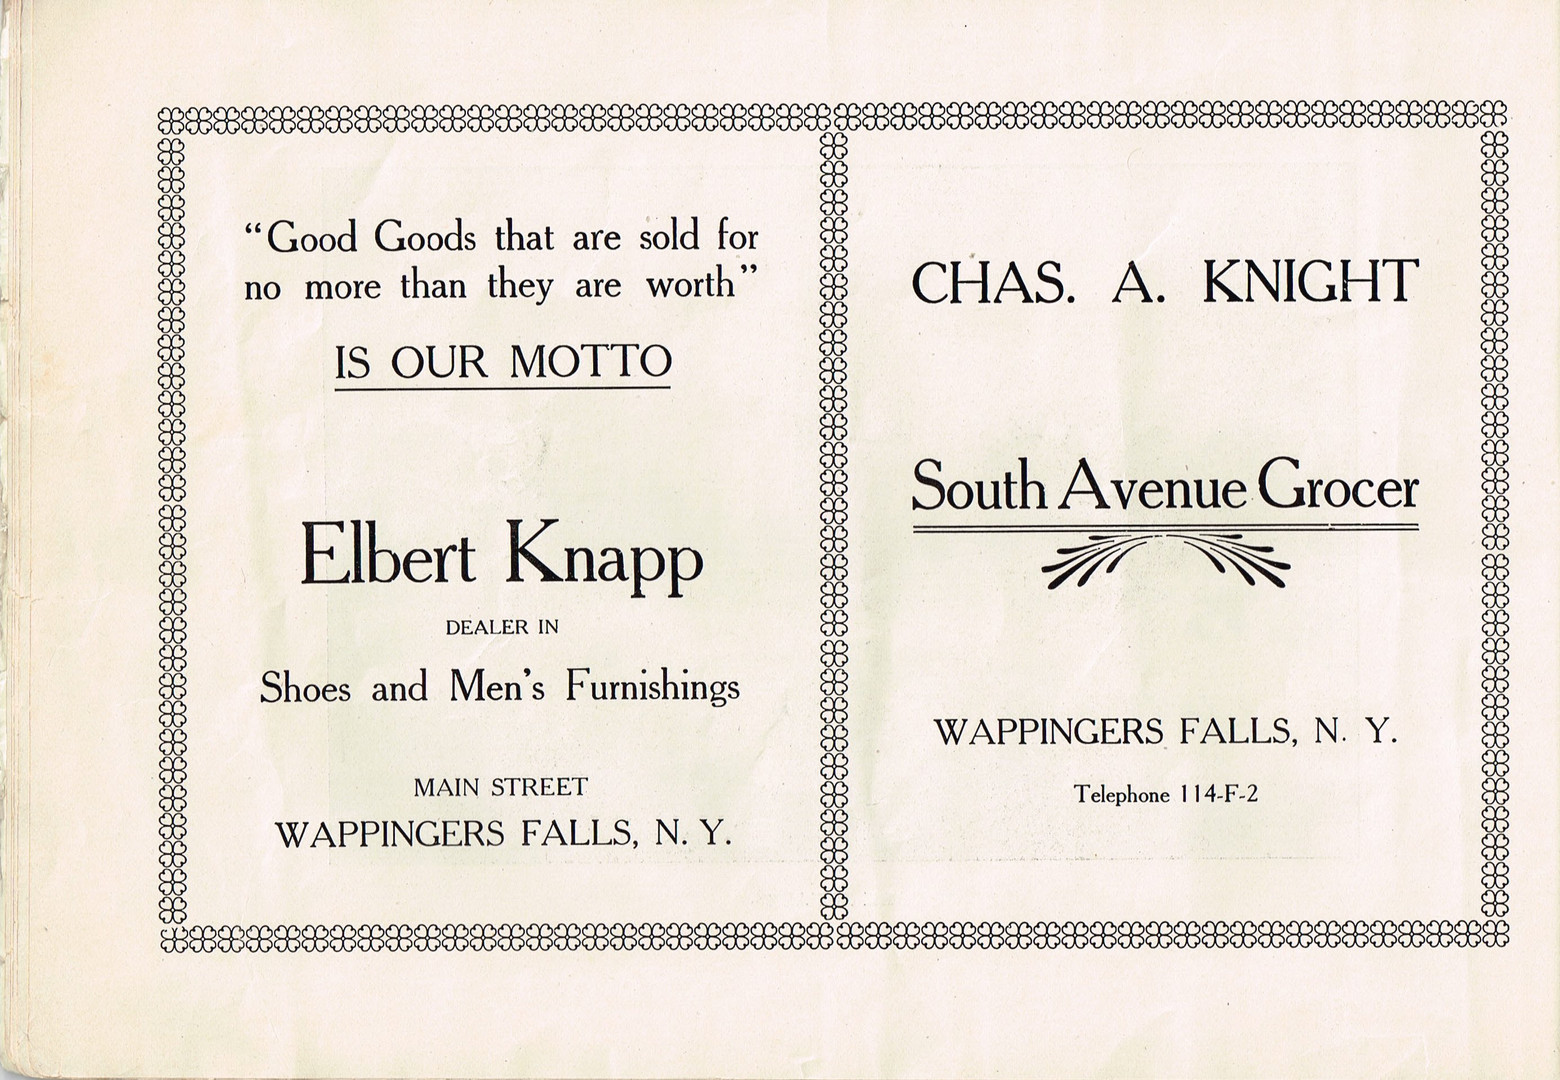 k - Old Home Week Souvenir Pamphlet - Au